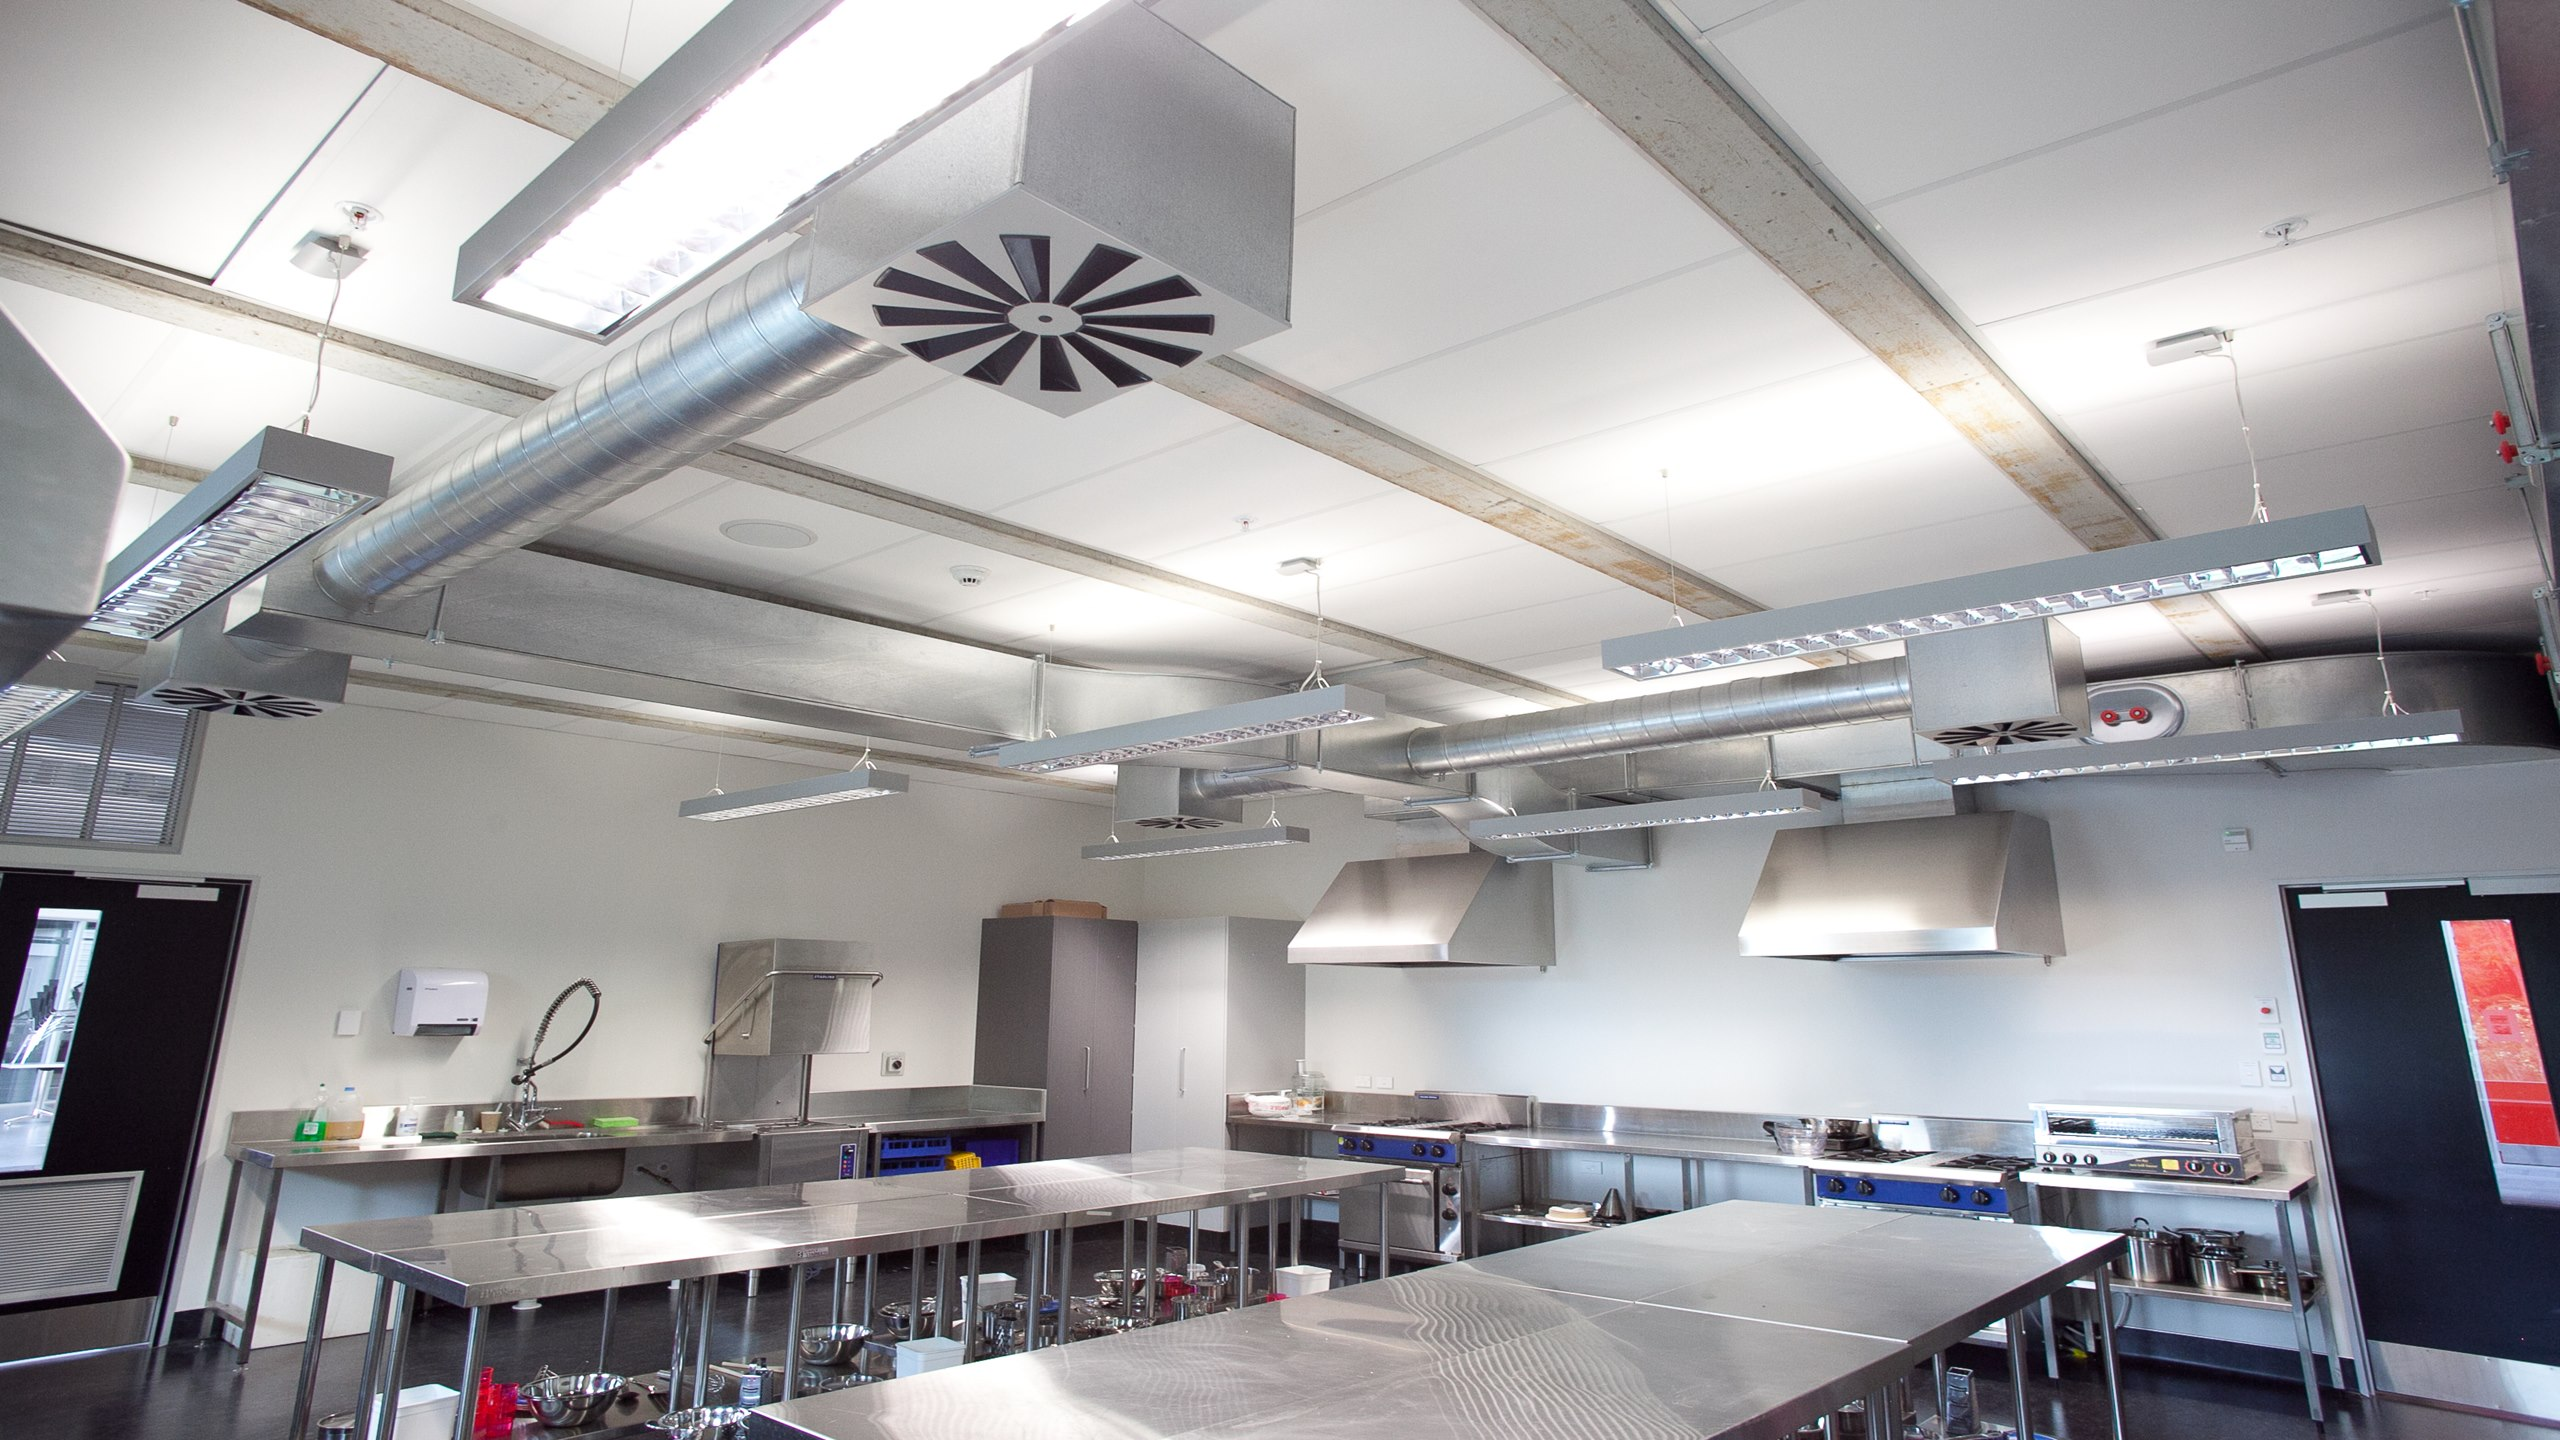 Albany High School, Food Tech Room - Triton Hygiene